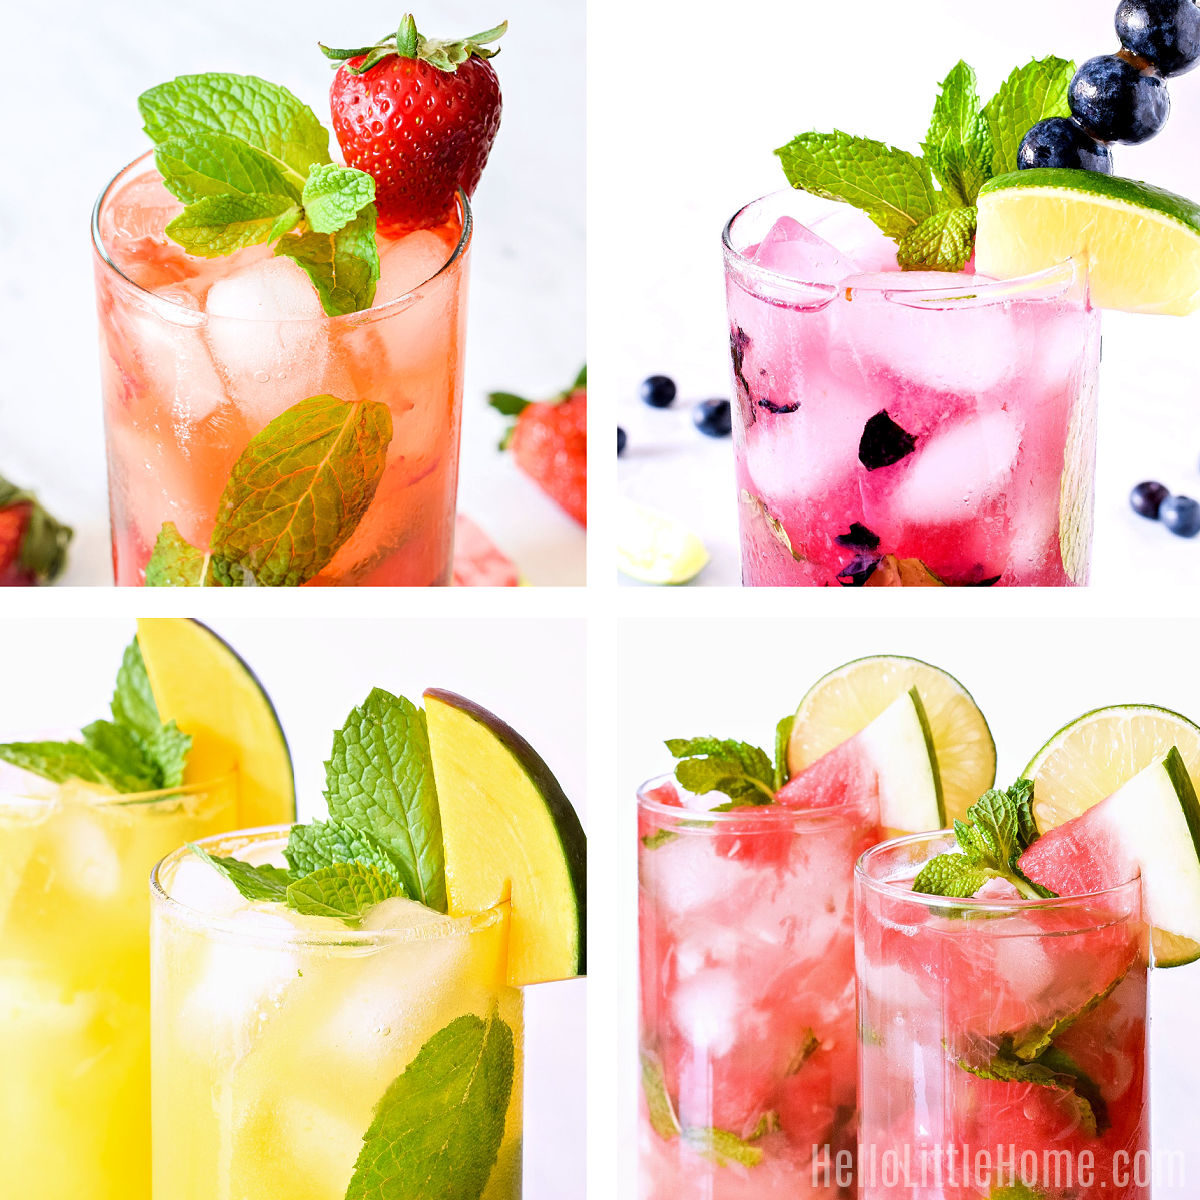 A photo collage showing variations on the mocktail made with strawberries, blueberries, mango, and watermelon.